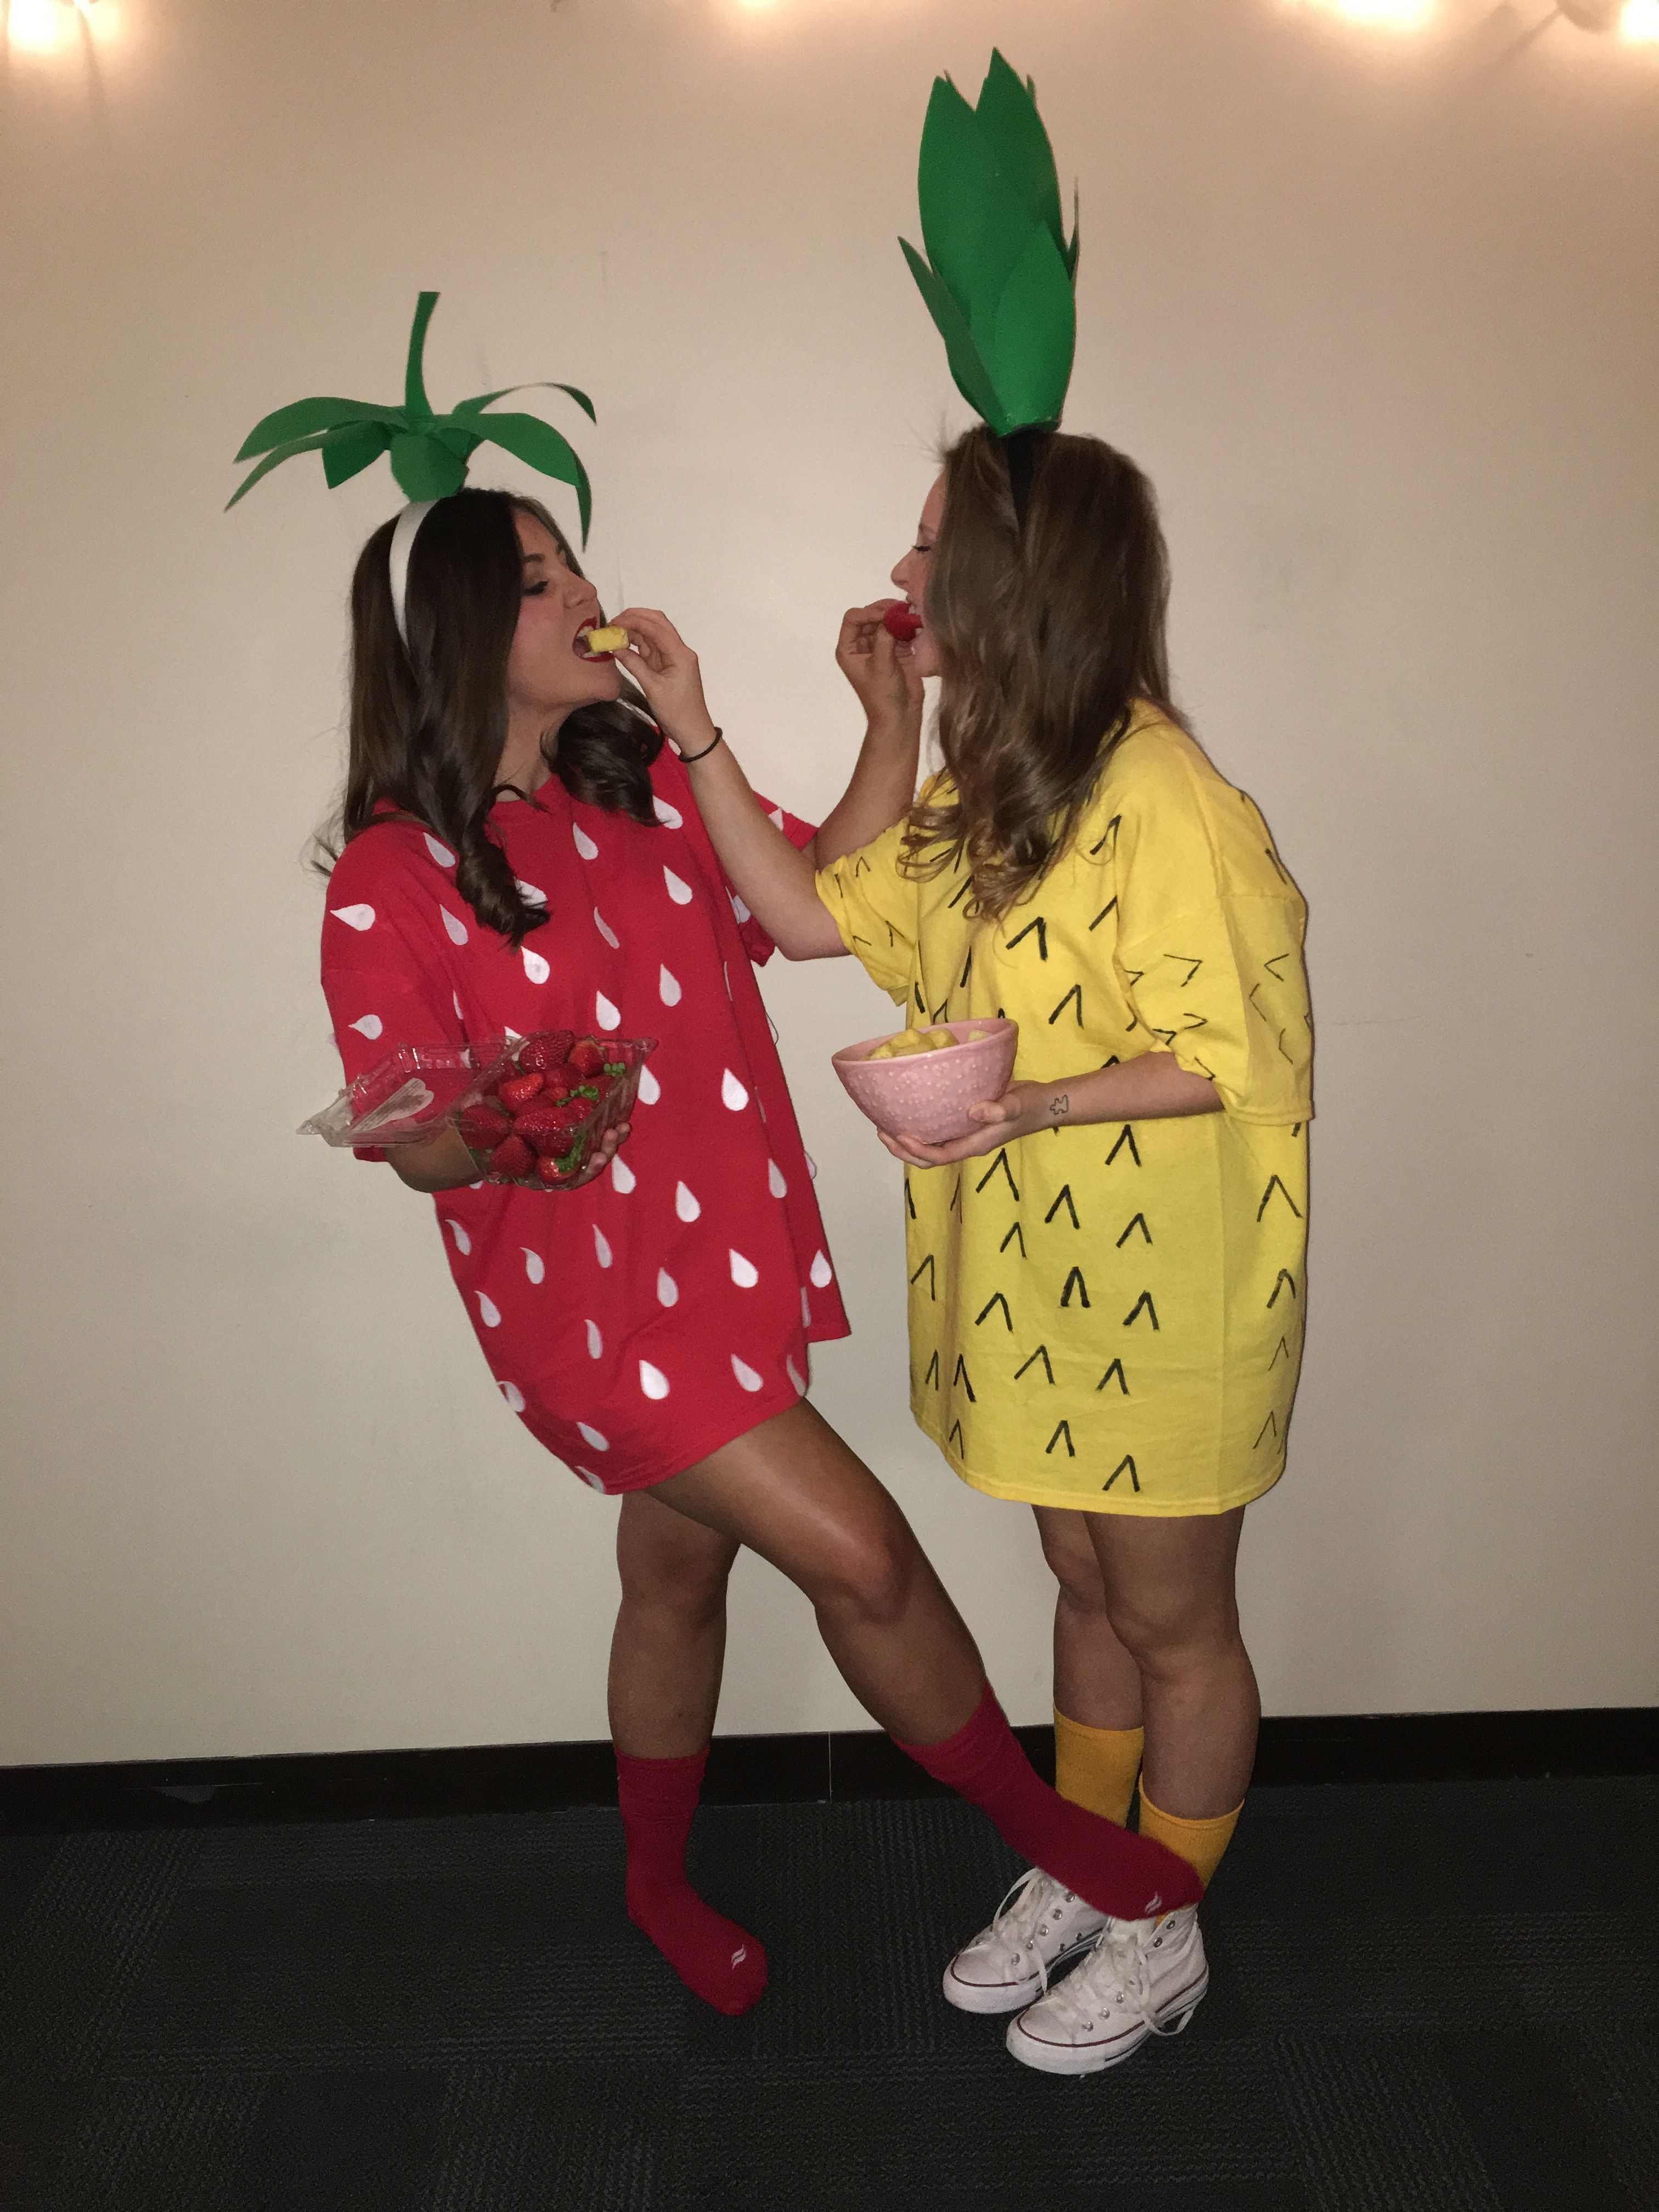 Ananas Kostüm Selber Machen Diy Strawberry And Pineapple Costume Fruits Fruit Salad